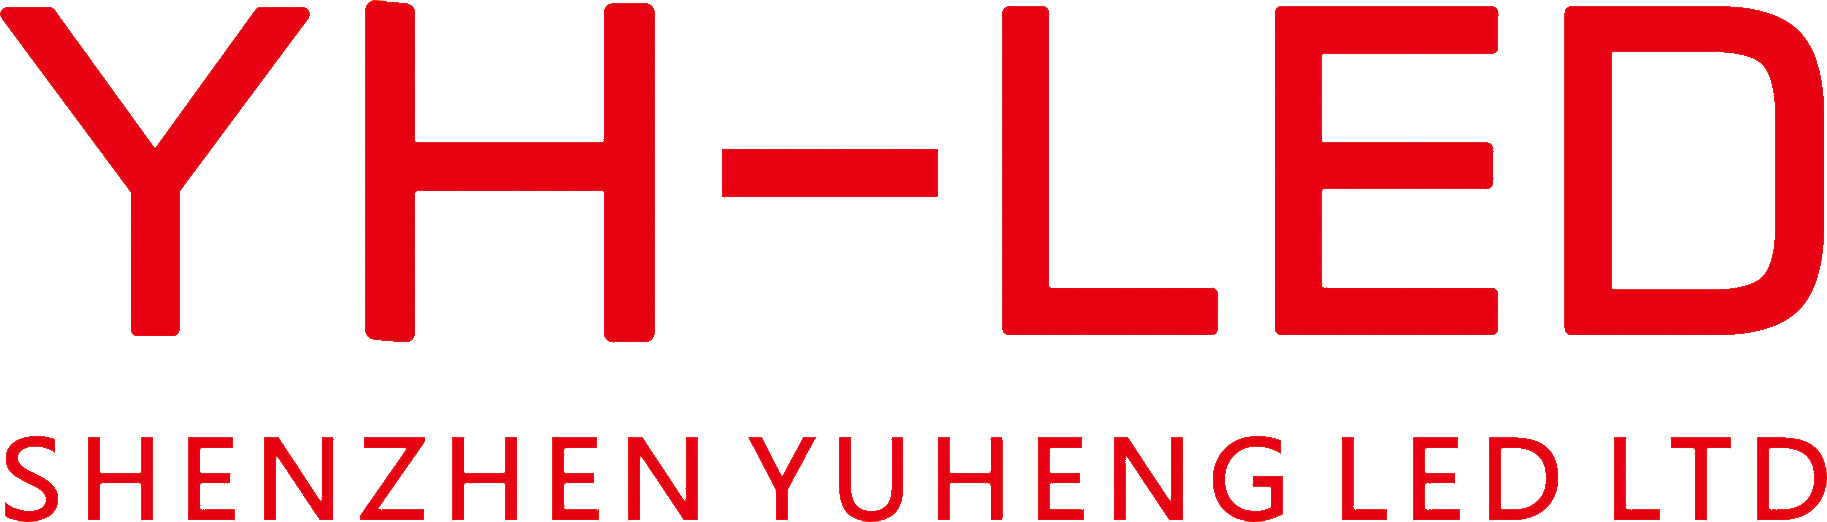 SHENZHEN YUHENG LED LIMITED